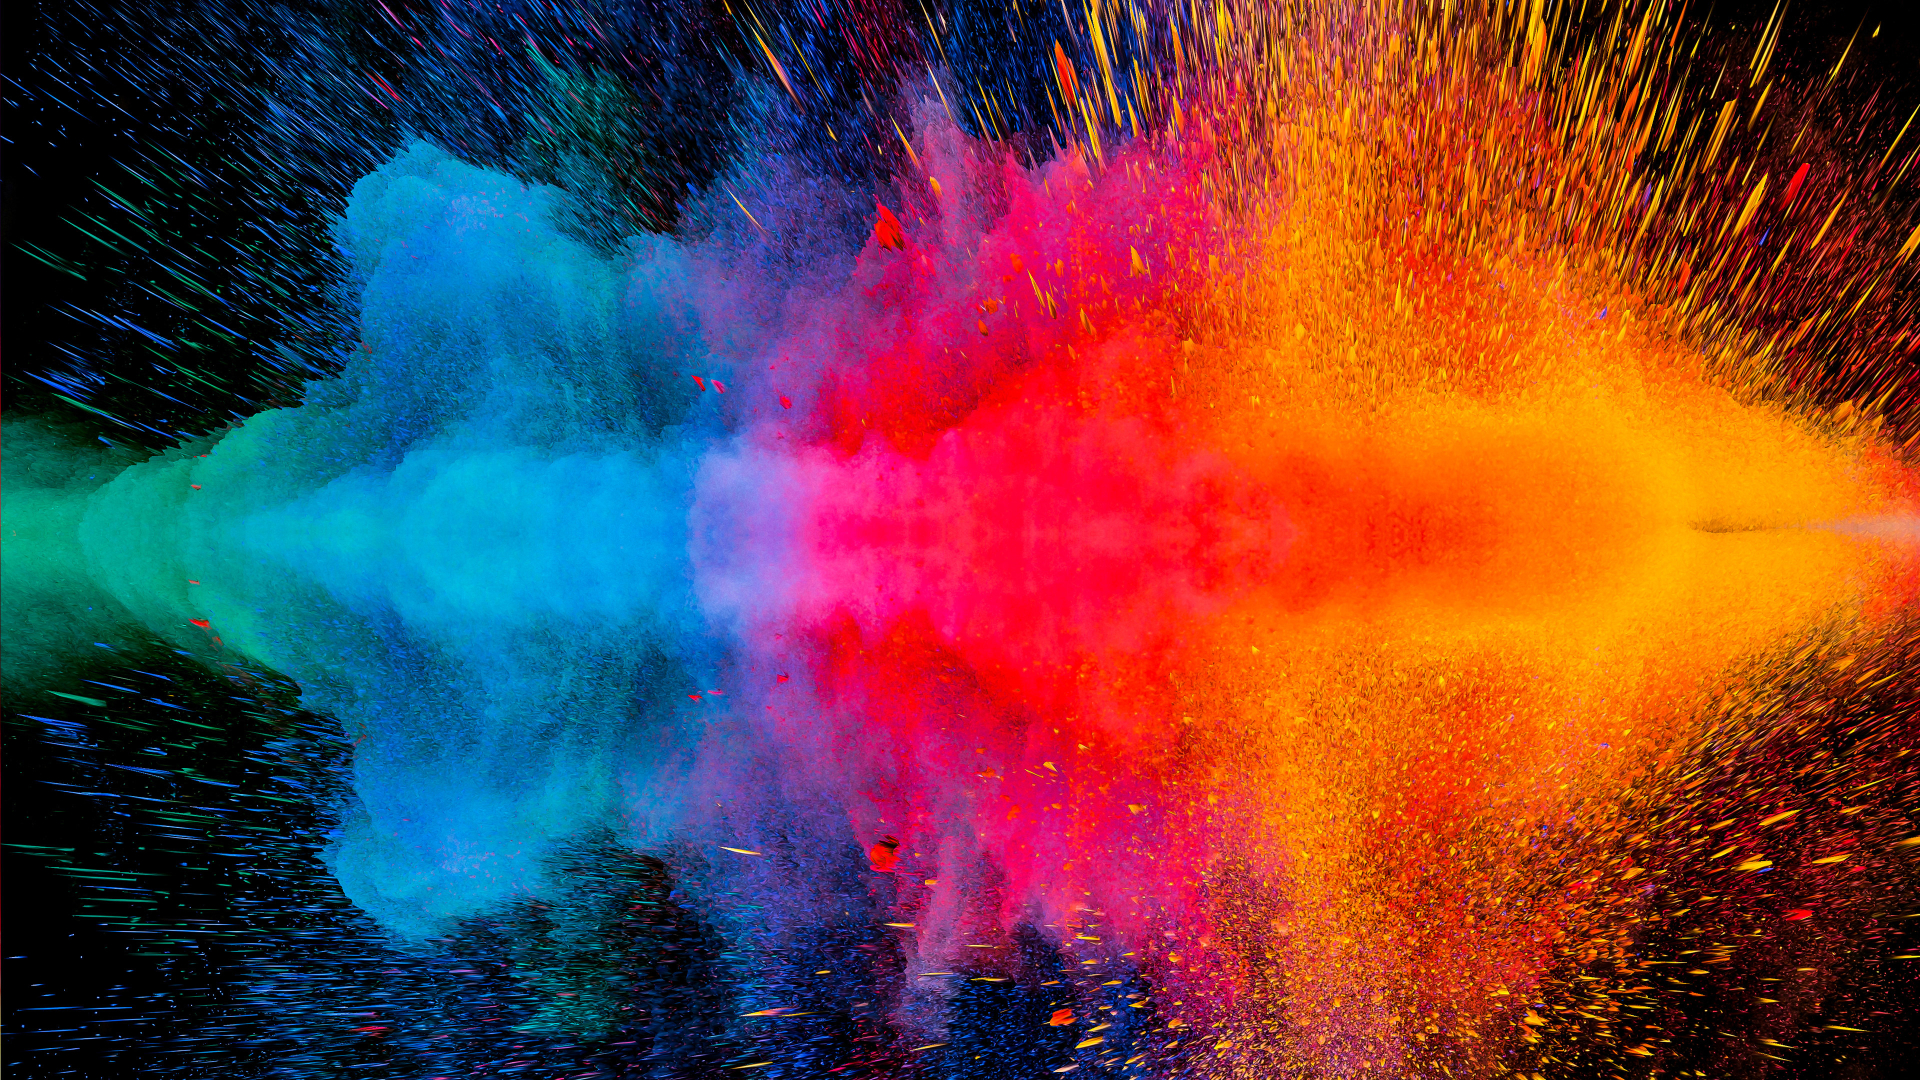 1920x1080 Colorful Dispersion 4k 1080p Laptop Full Hd Wallpaper Hd Abstract 4k Wallpapers Images Photos And Background Wallpapers Den